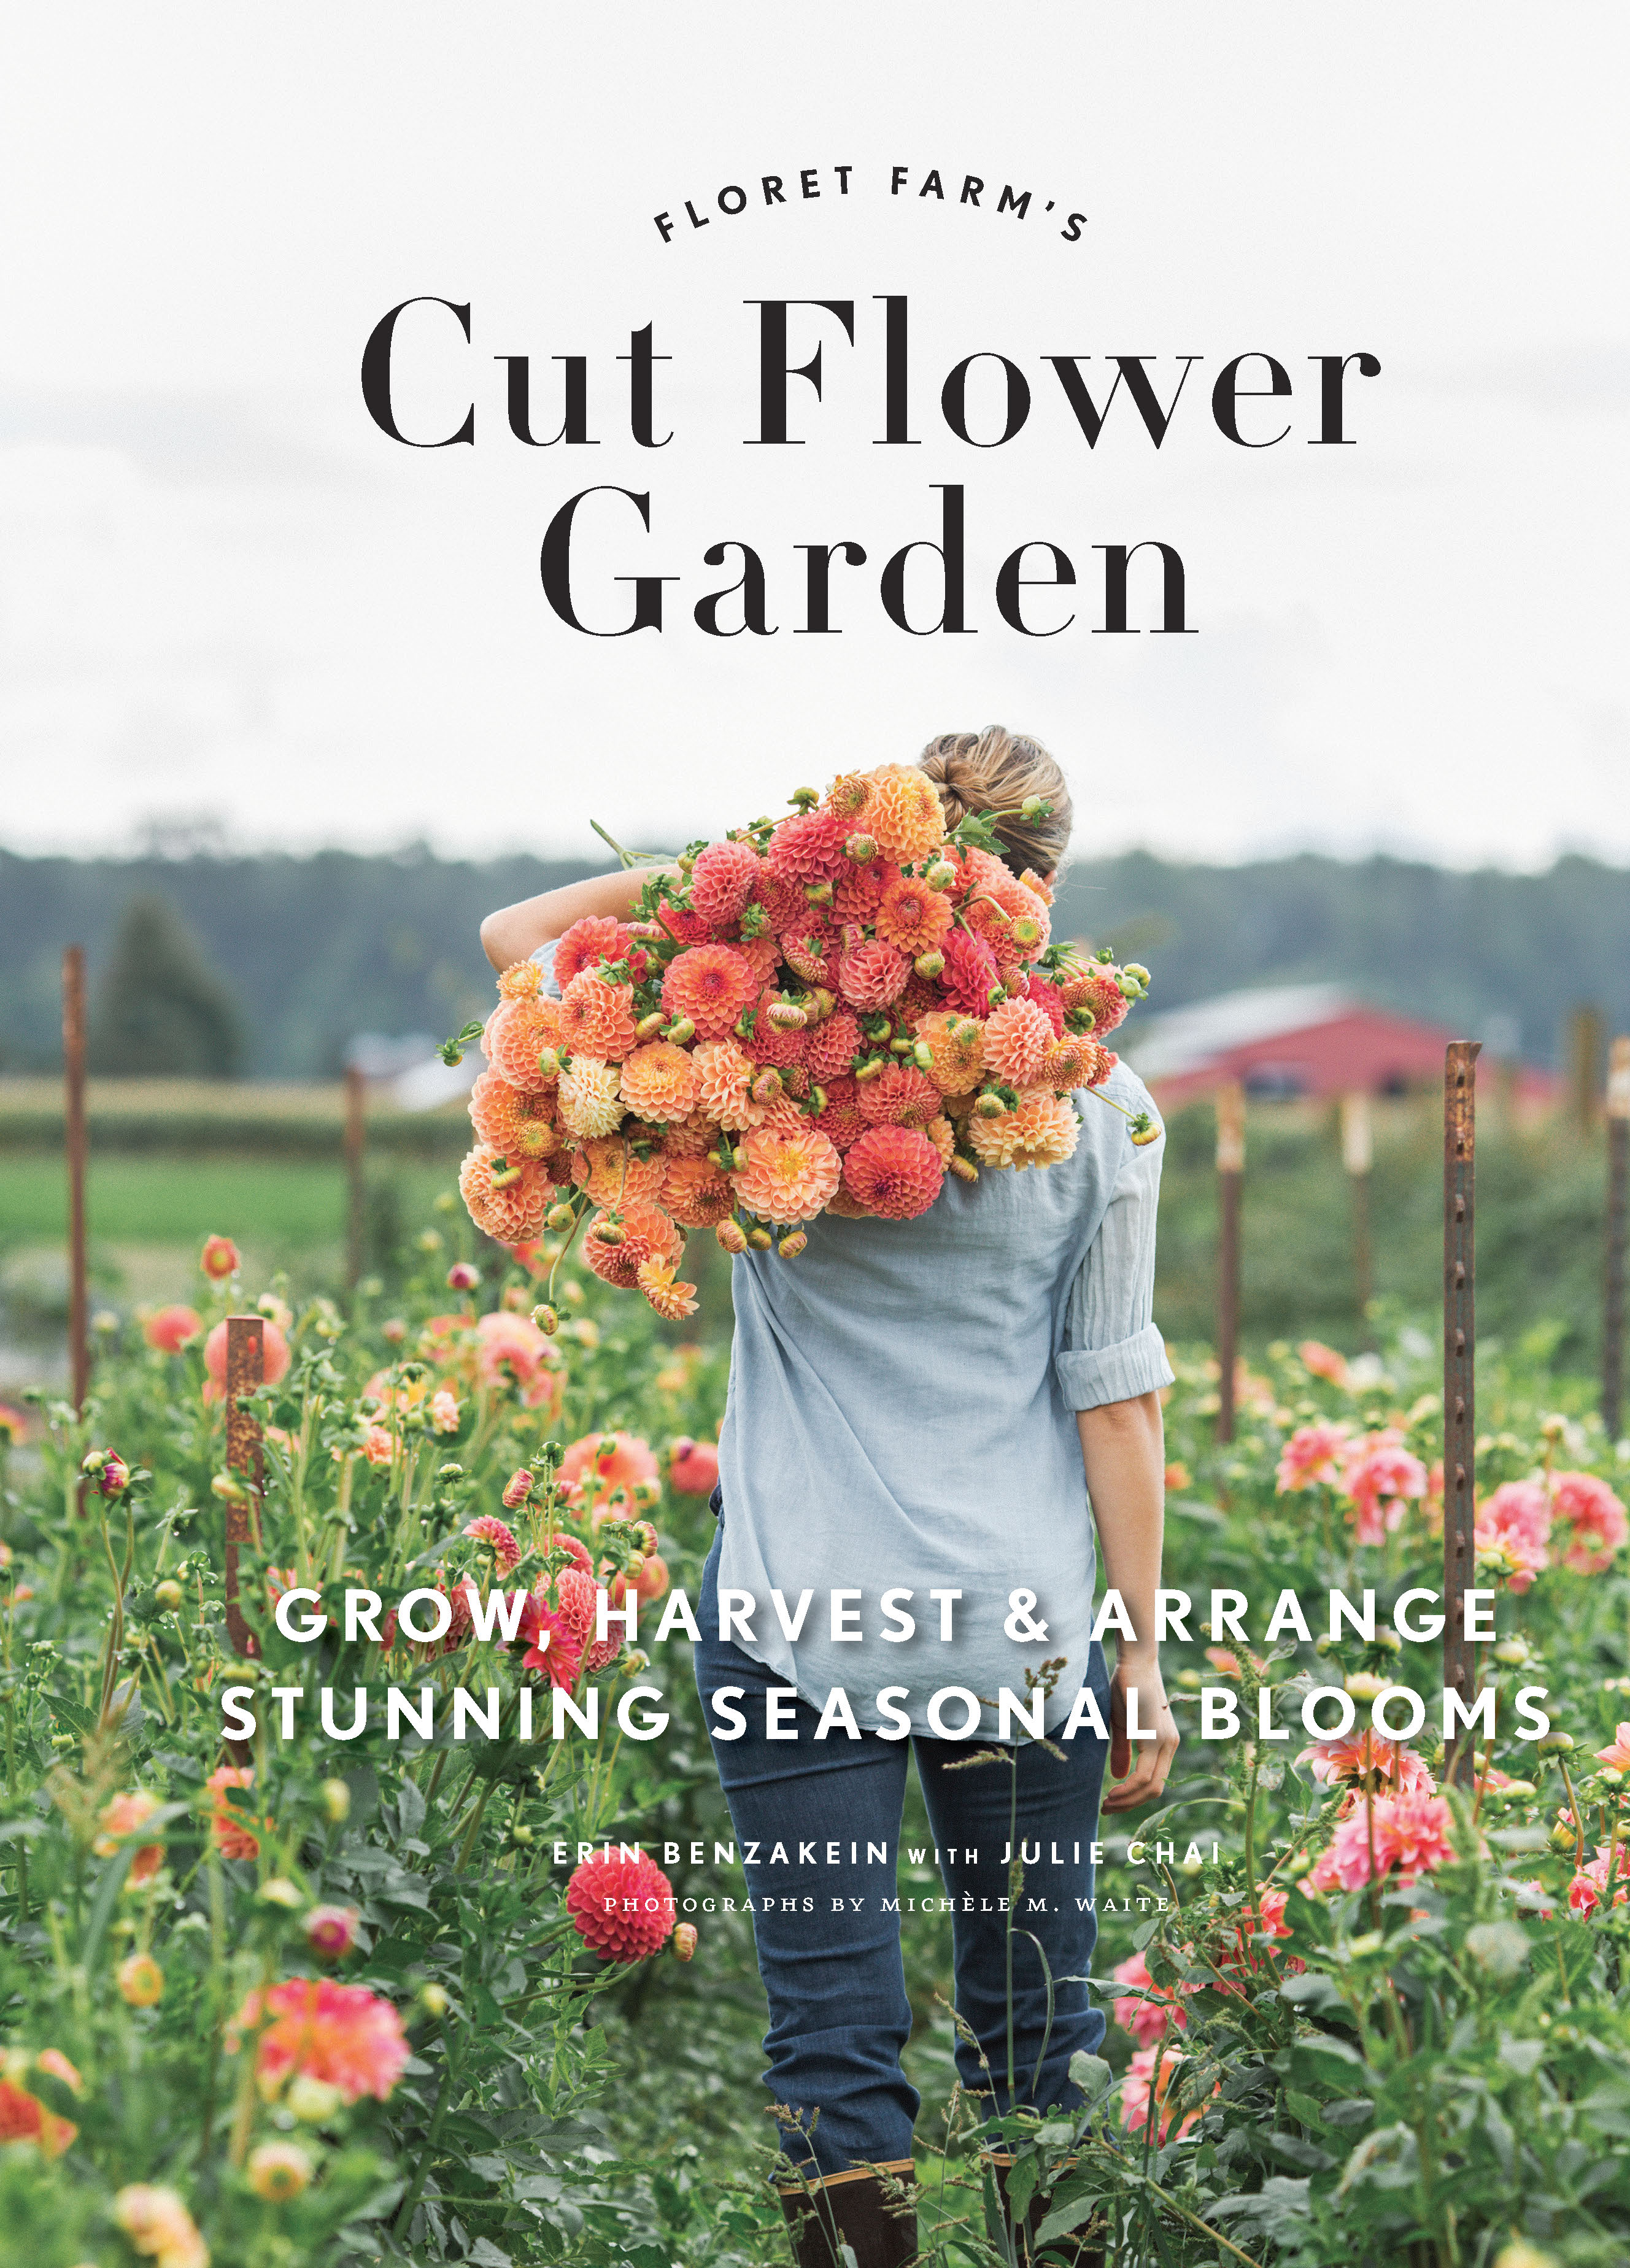 Cover Image of Floret Farm's Cut Flower Garden